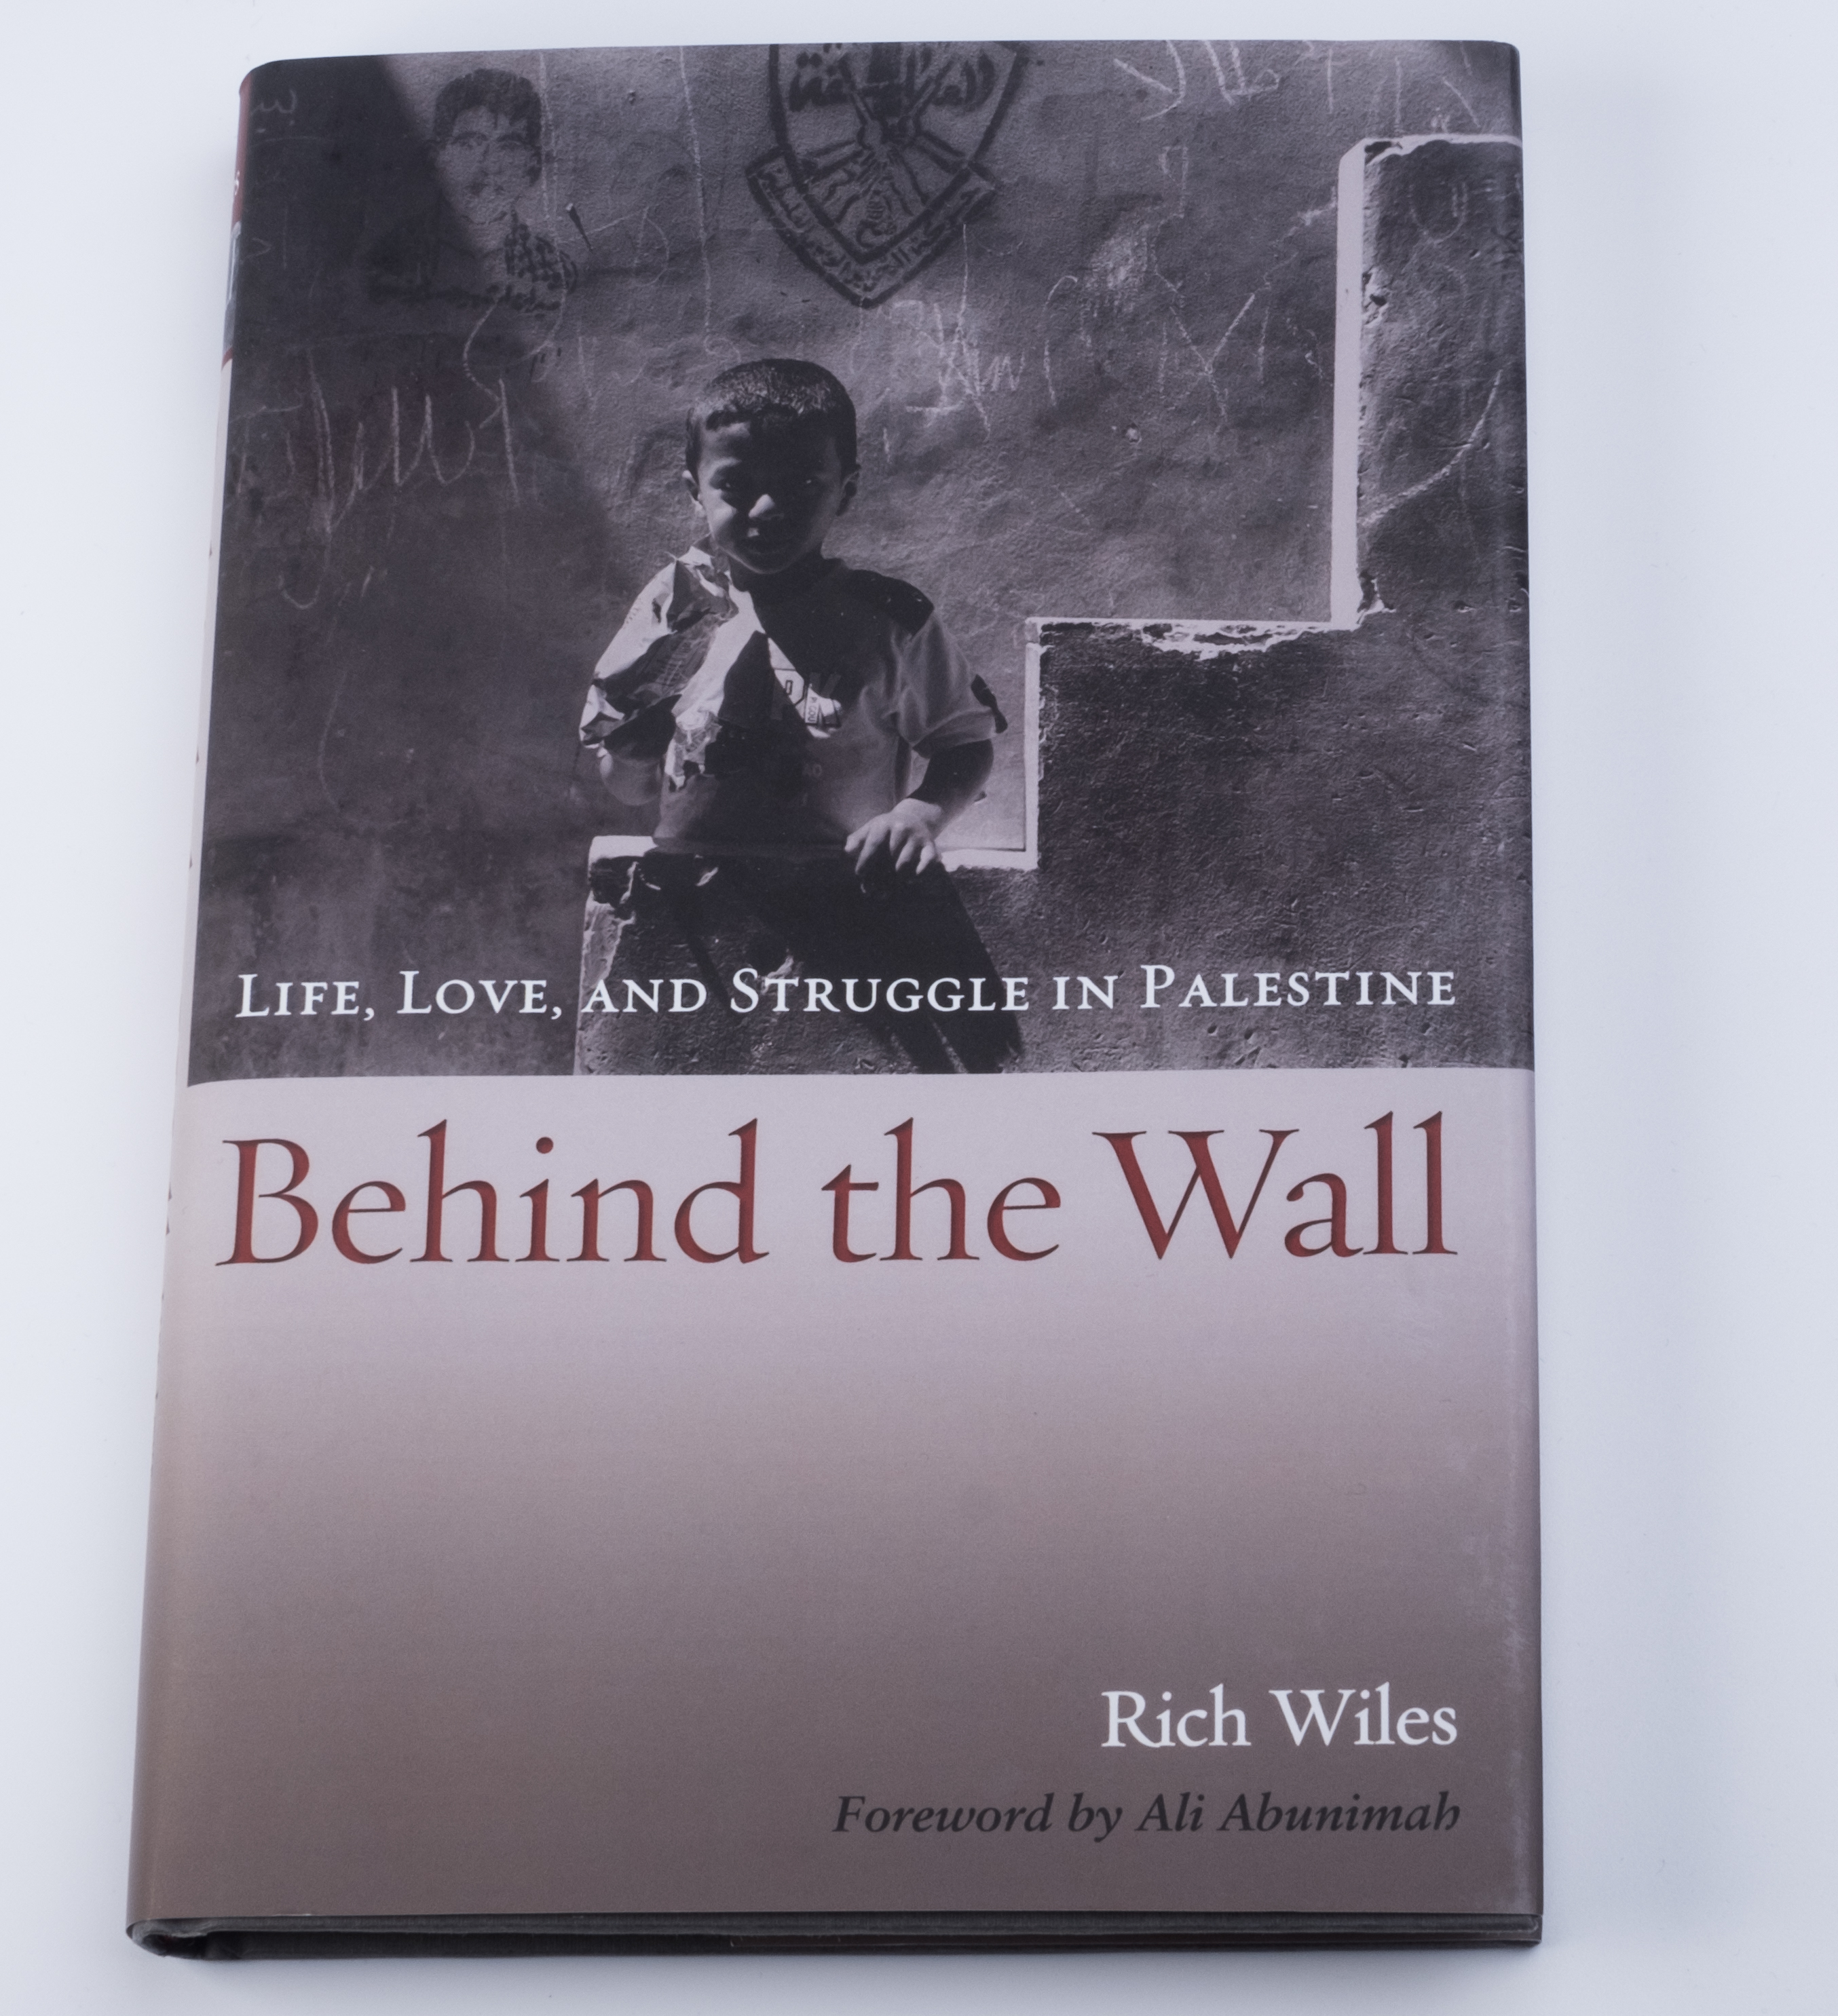 RICH WILES - Behind The Wall